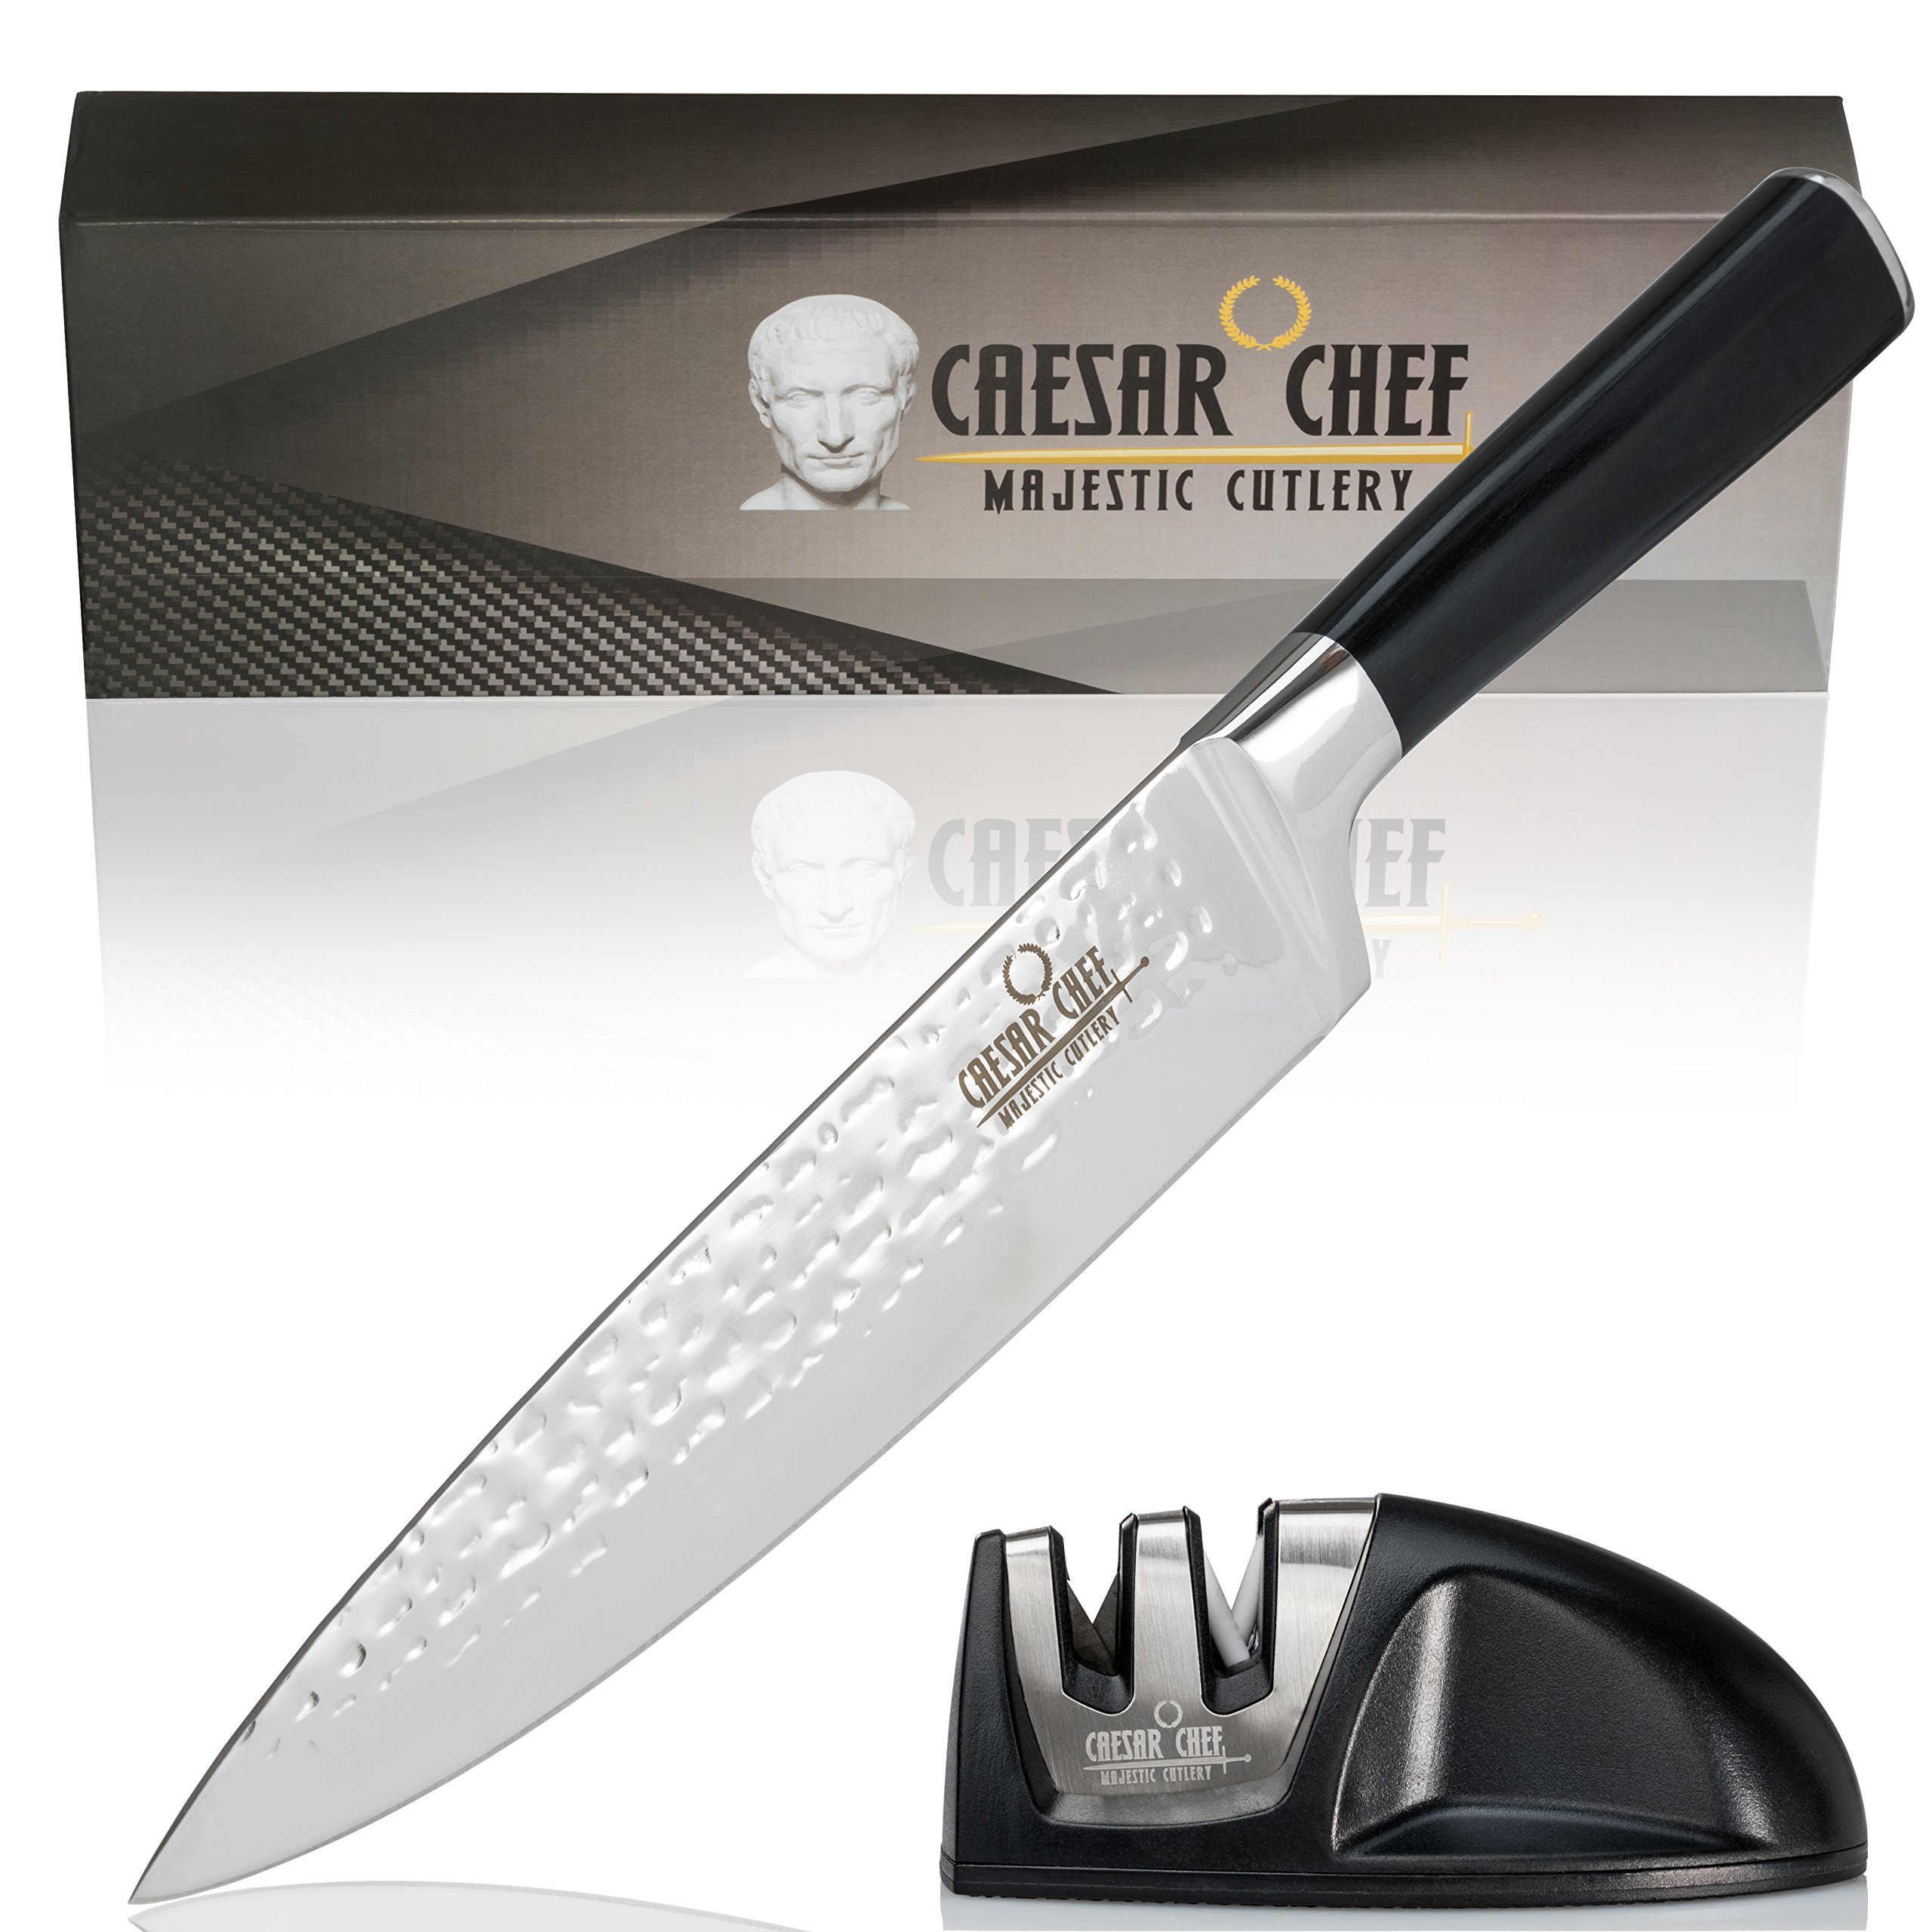 "Caesar Chef Professional Chef's Knife and Sharpener Set - Ultra Sharp 8"" High Carbon Stainless Steel Kitchen Knife with Ergonomic Handle will cut, slice, dice, chop and mince all foods with ease by by Caesar Chef"